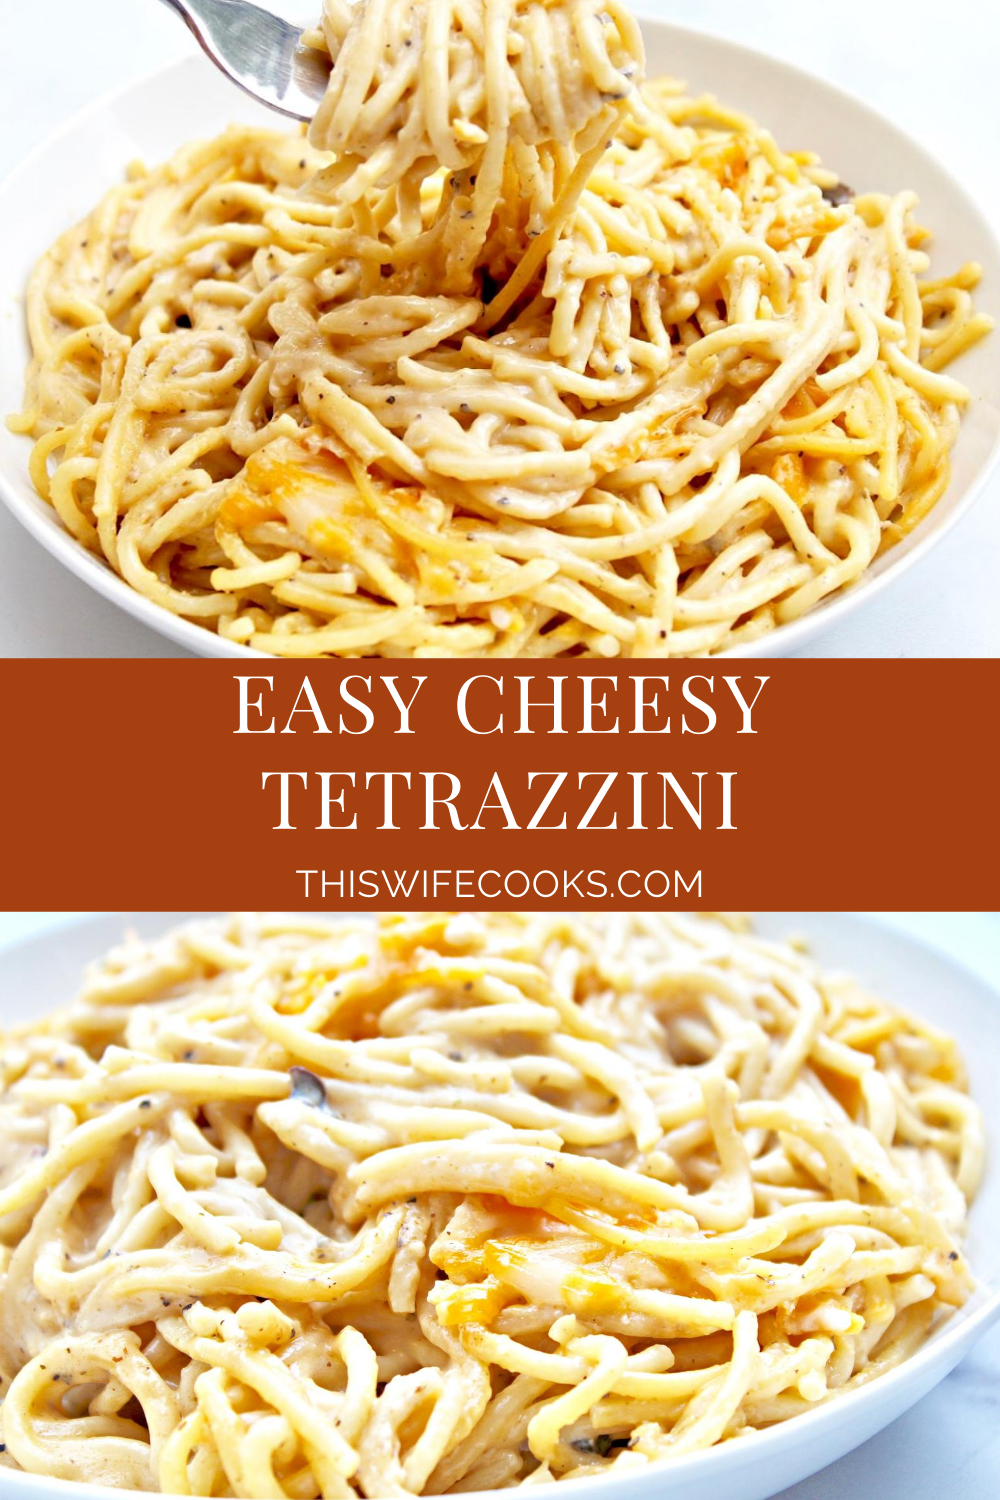 Easy Cheesy Tetrazzini ~ Spaghetti pasta tossed in a rich and creamy, dairy-free cheese sauce then baked for an ultra comforting casserole the whole family will love. This kid-friendly pasta bake is ready to serve in about an hour. via @thiswifecooks